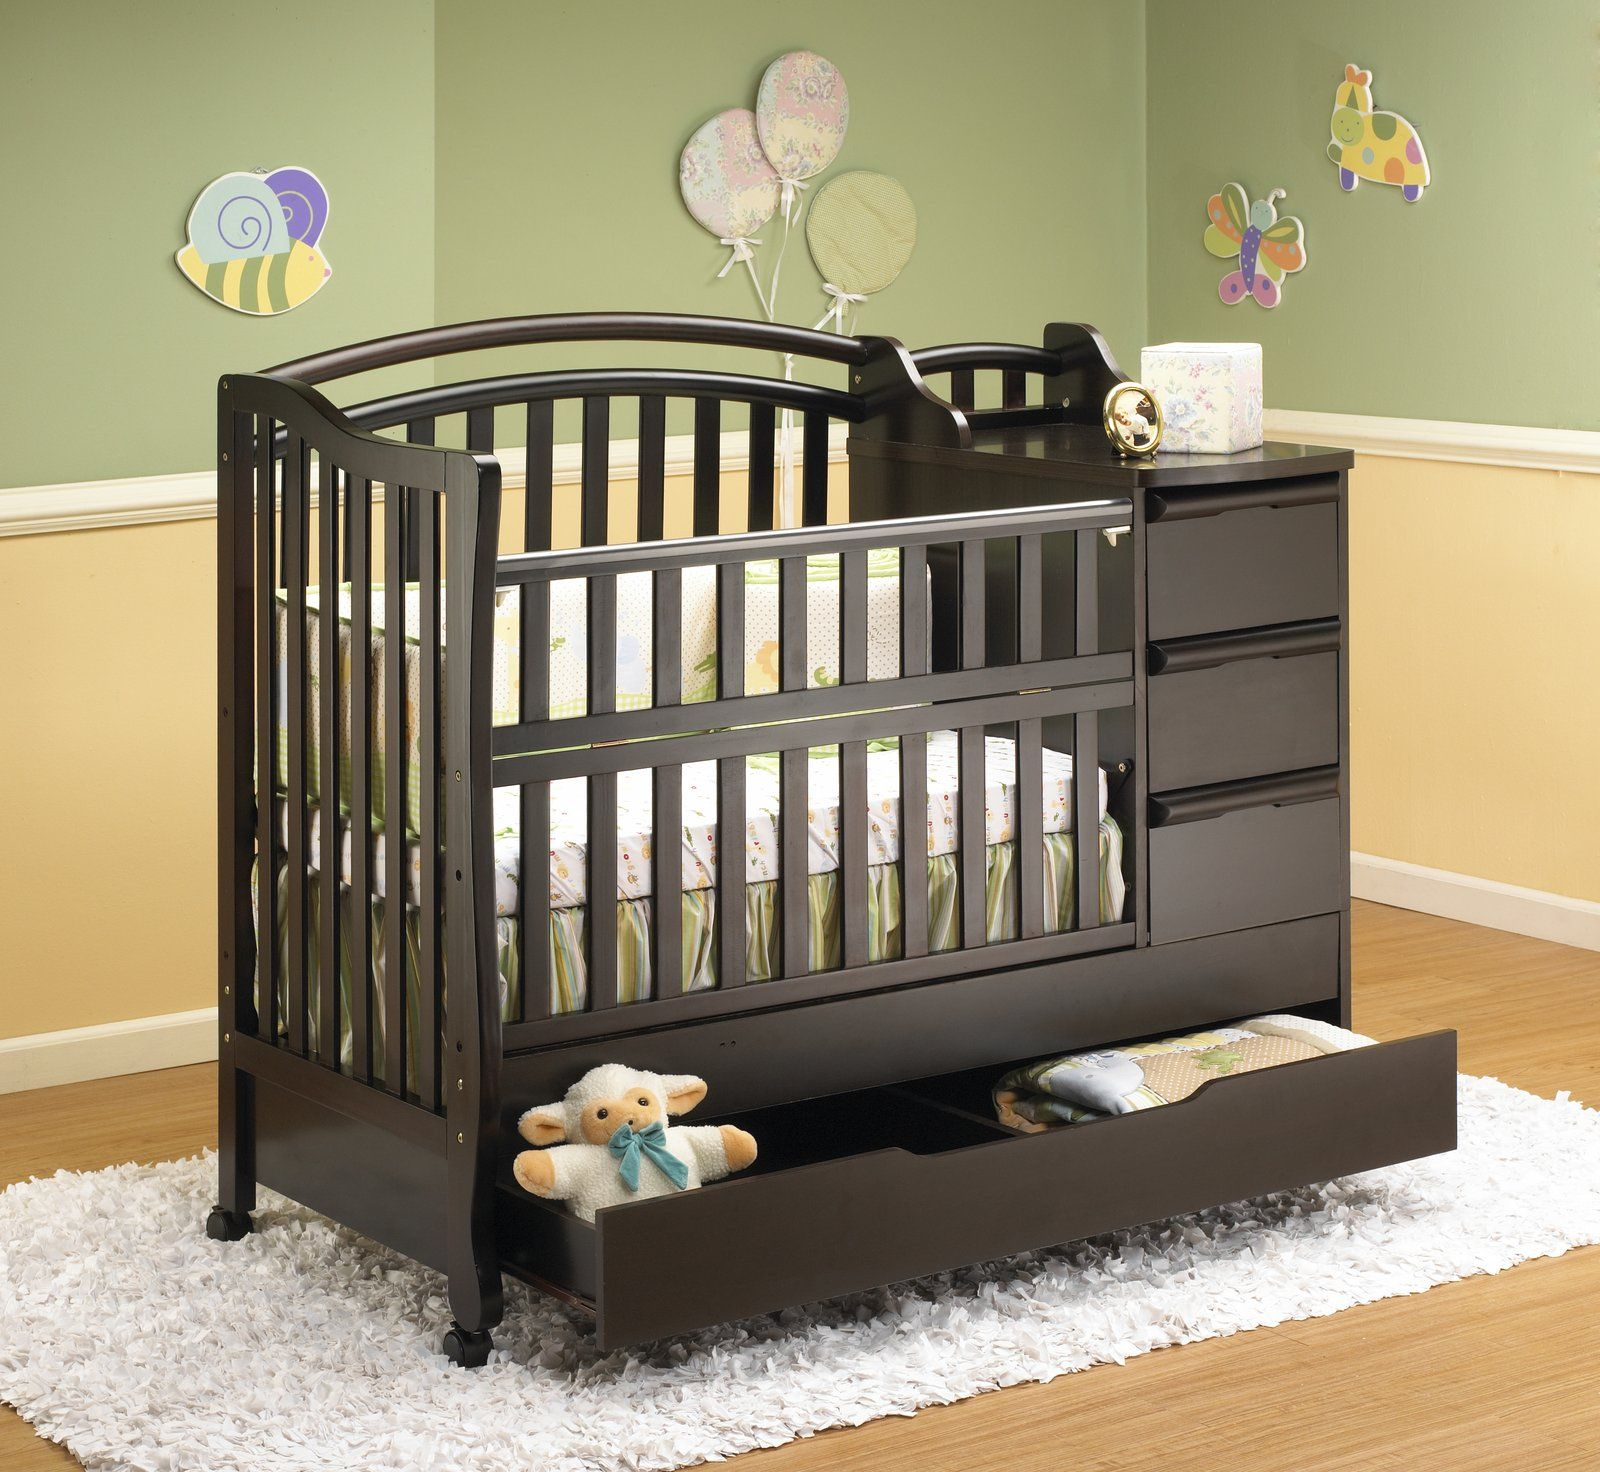 itm image with crib full changing drawers s loading cribs toddler and baby bed storage daybed is table dresser